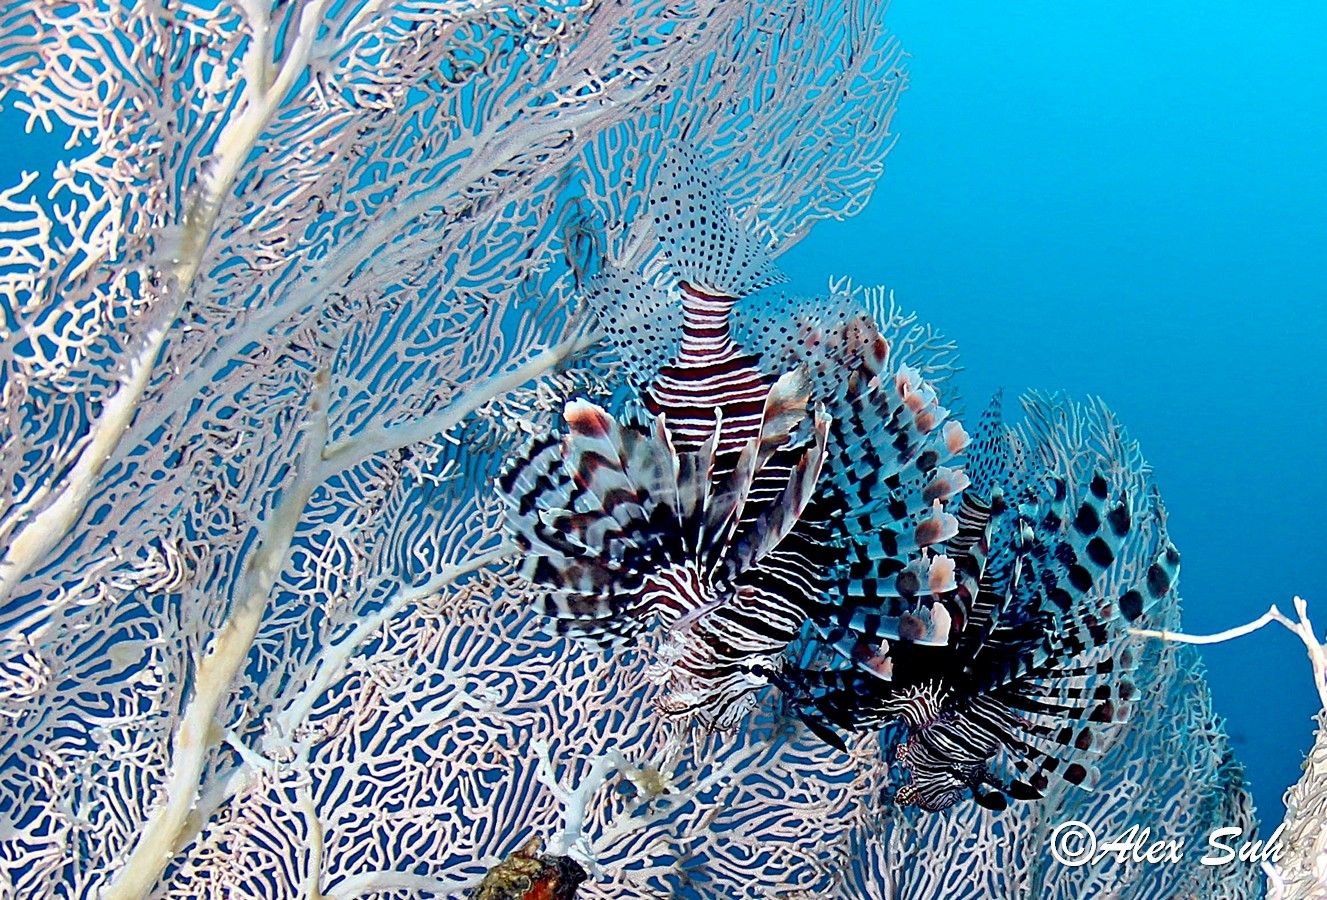 Pair of Lion Fish